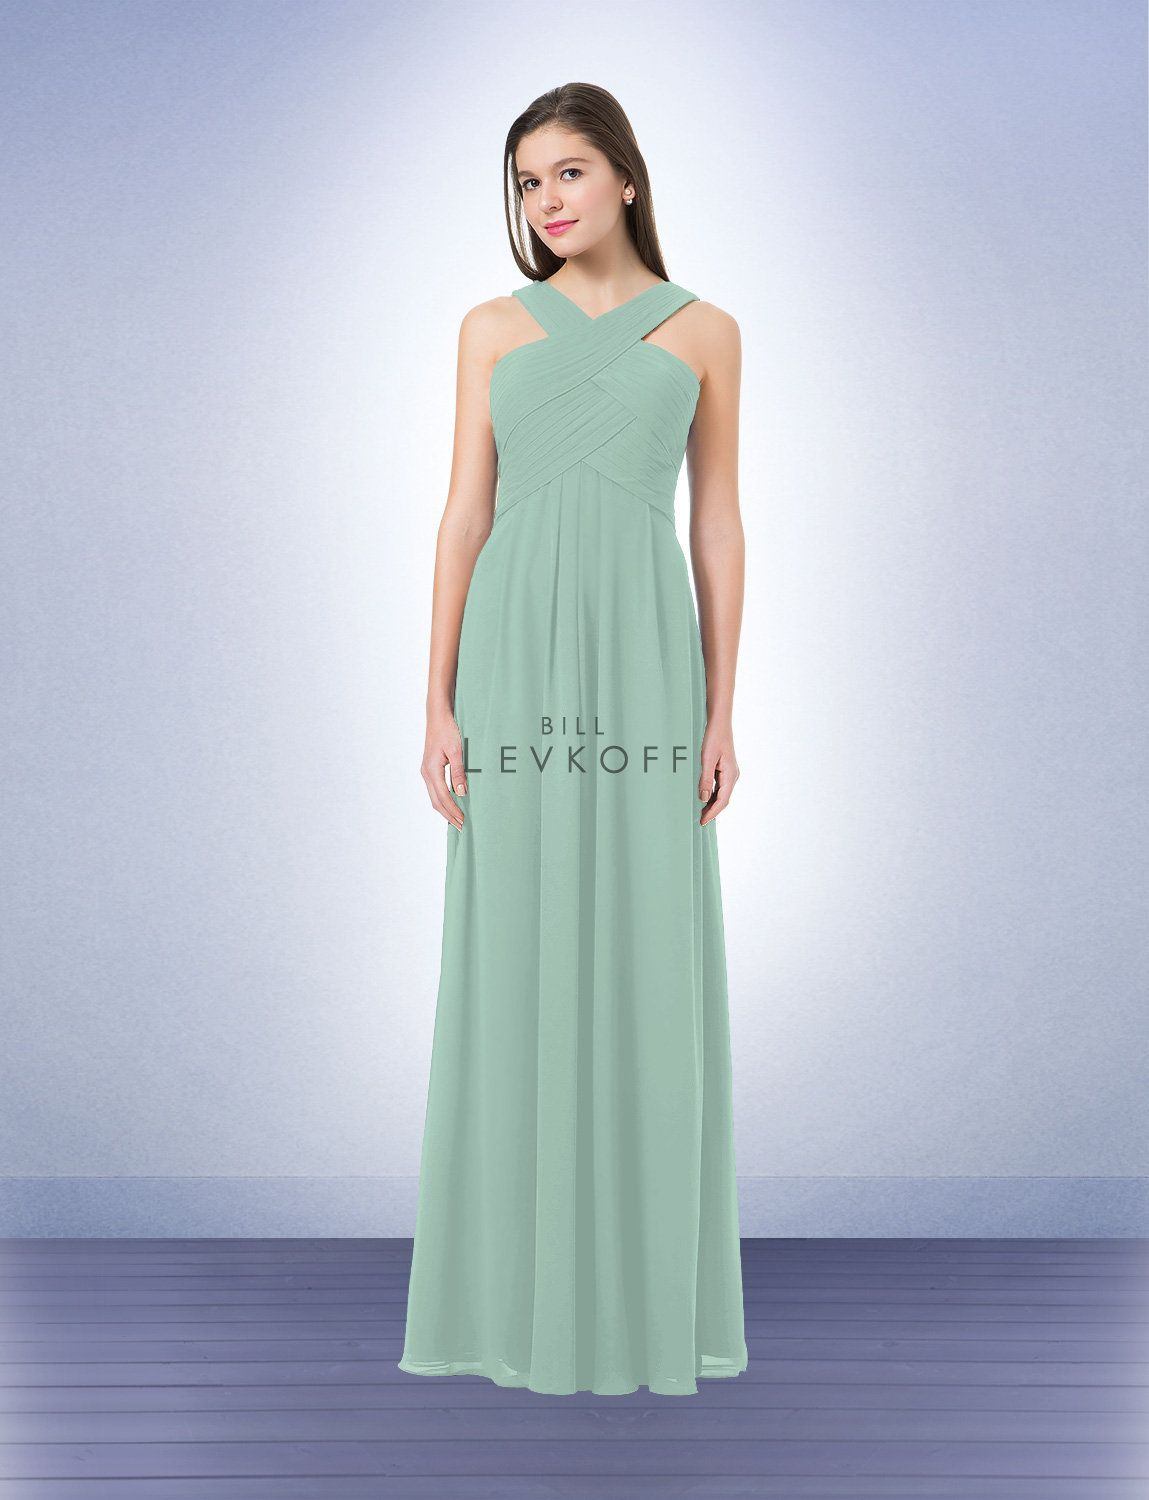 Bridesmaid dress style 1218 bridesmaid dresses by bill levkoff bridesmaid dress style 1218 bridesmaid dresses by bill levkoff ombrellifo Images